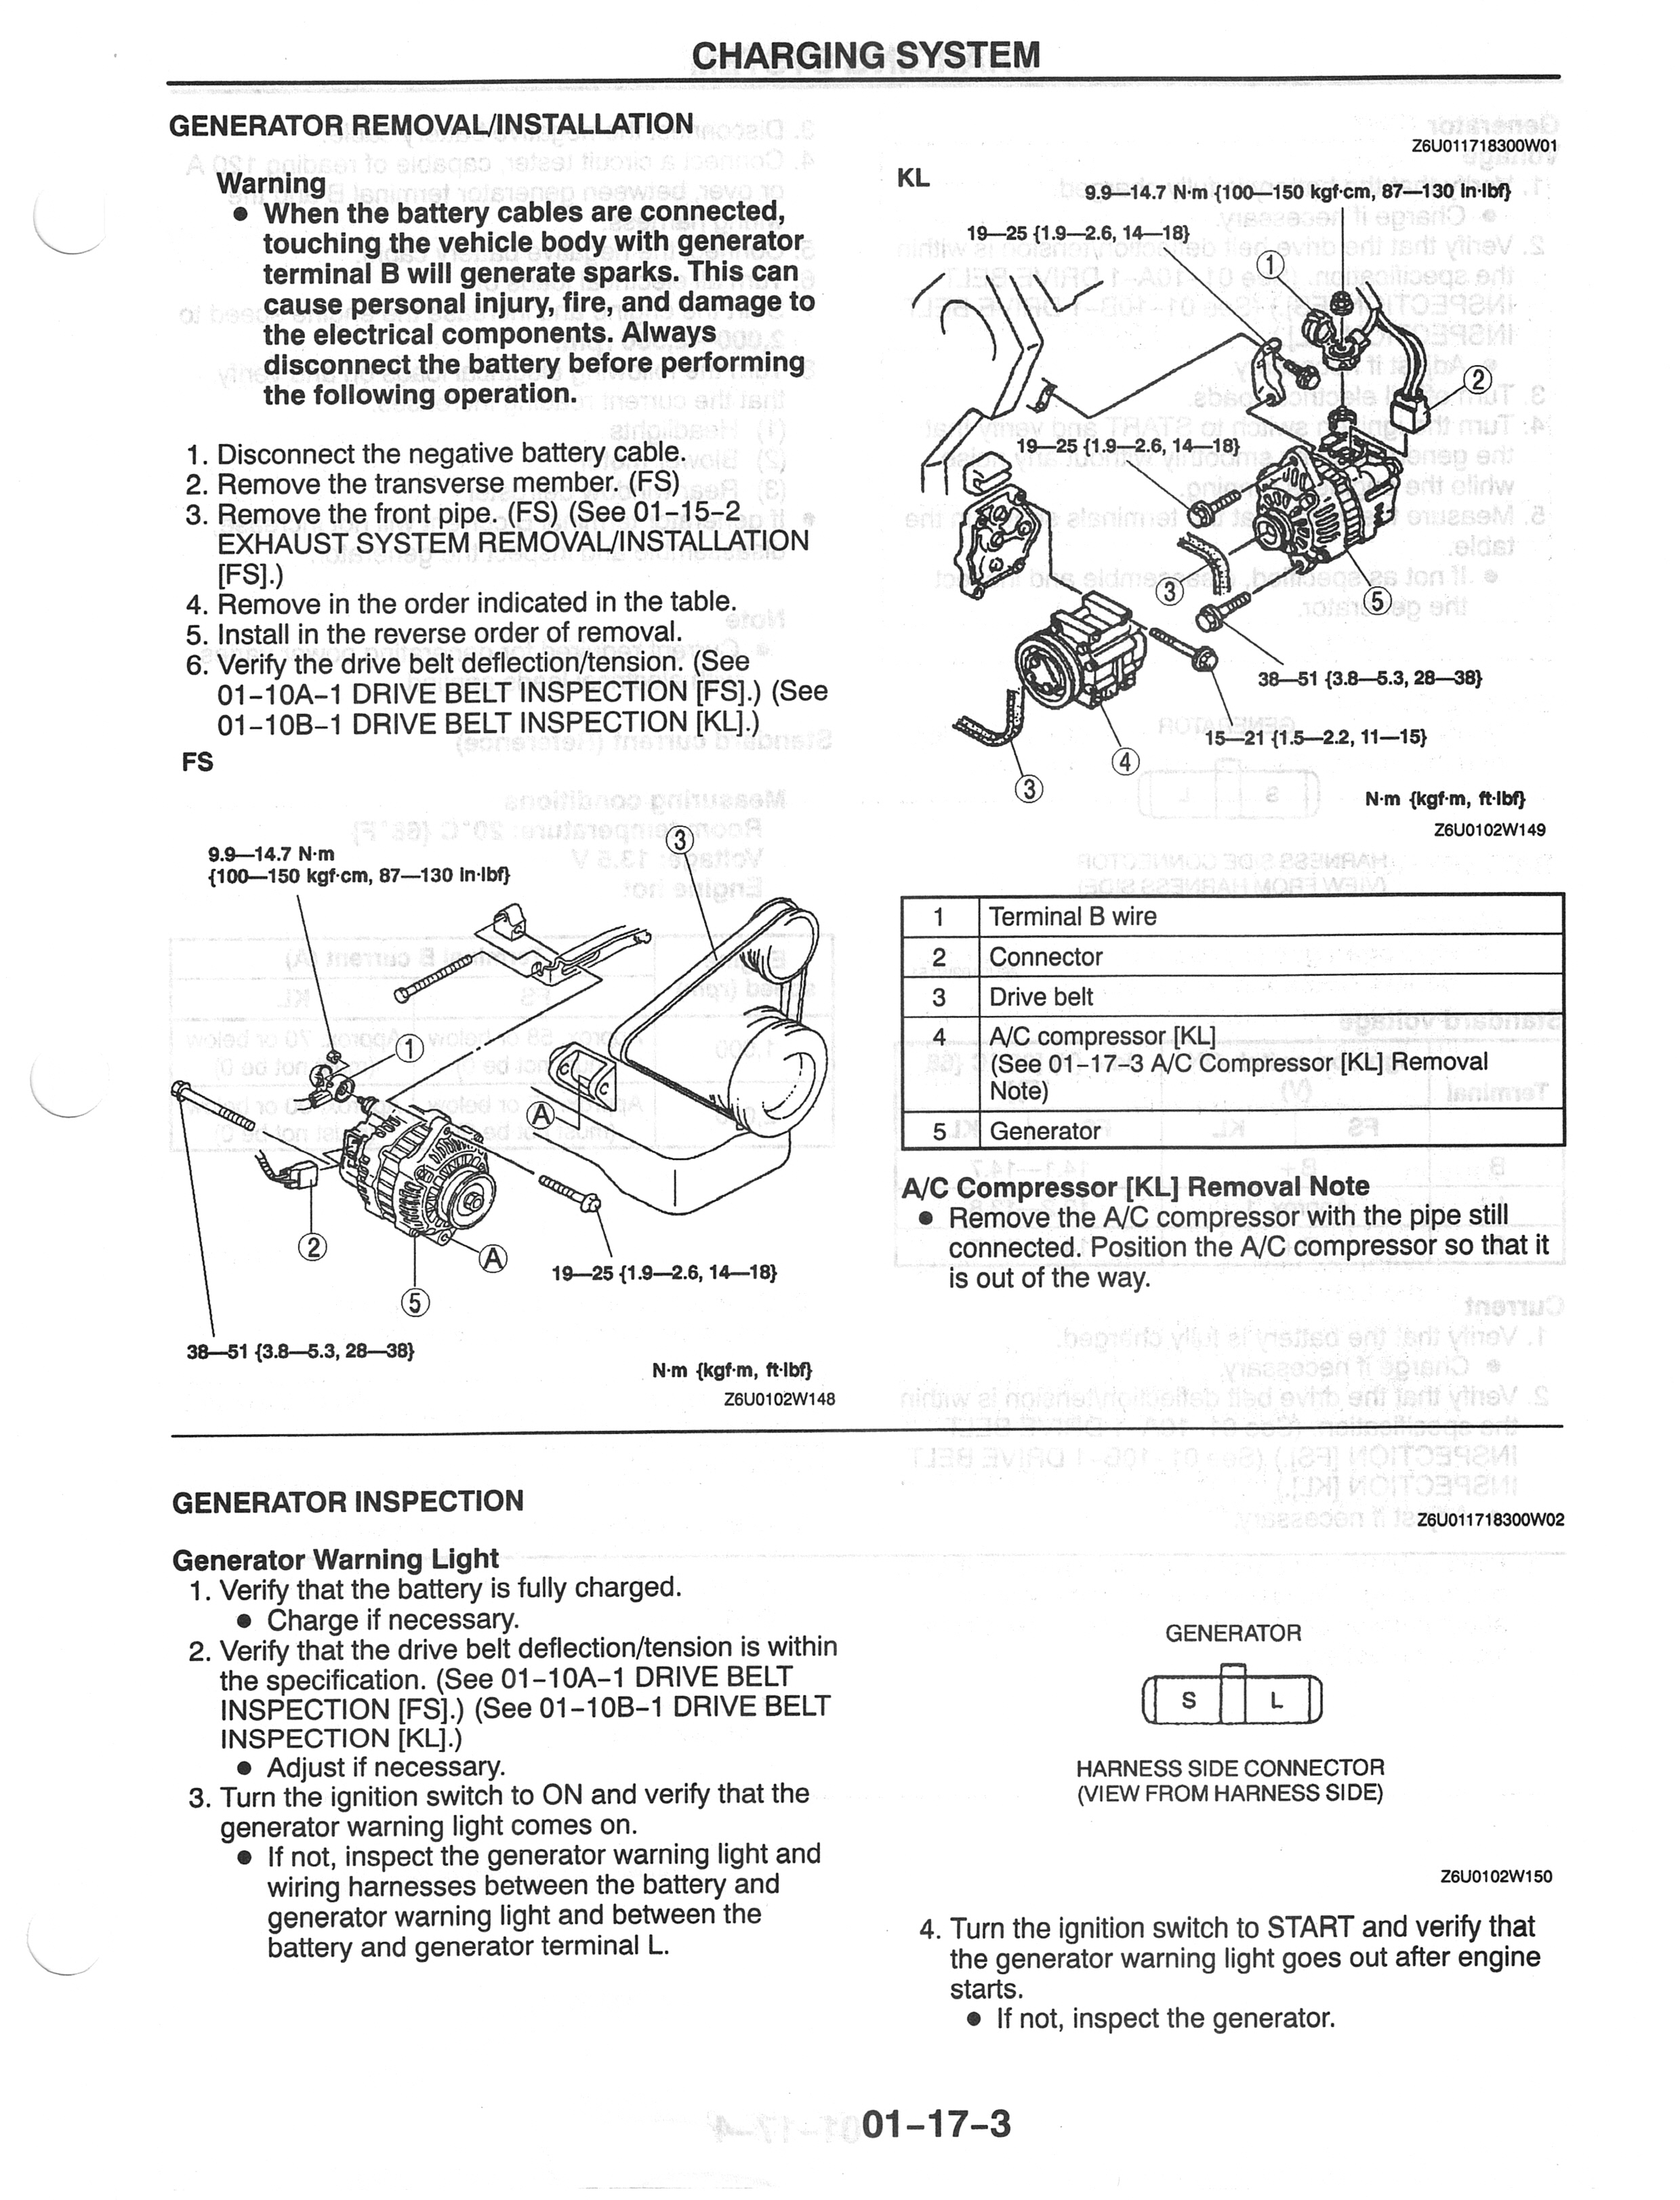 Charging System Alternator 1993 2002 2l I4 Forums Drive Works Wire Diagram 1 Img 379470 01 17 3